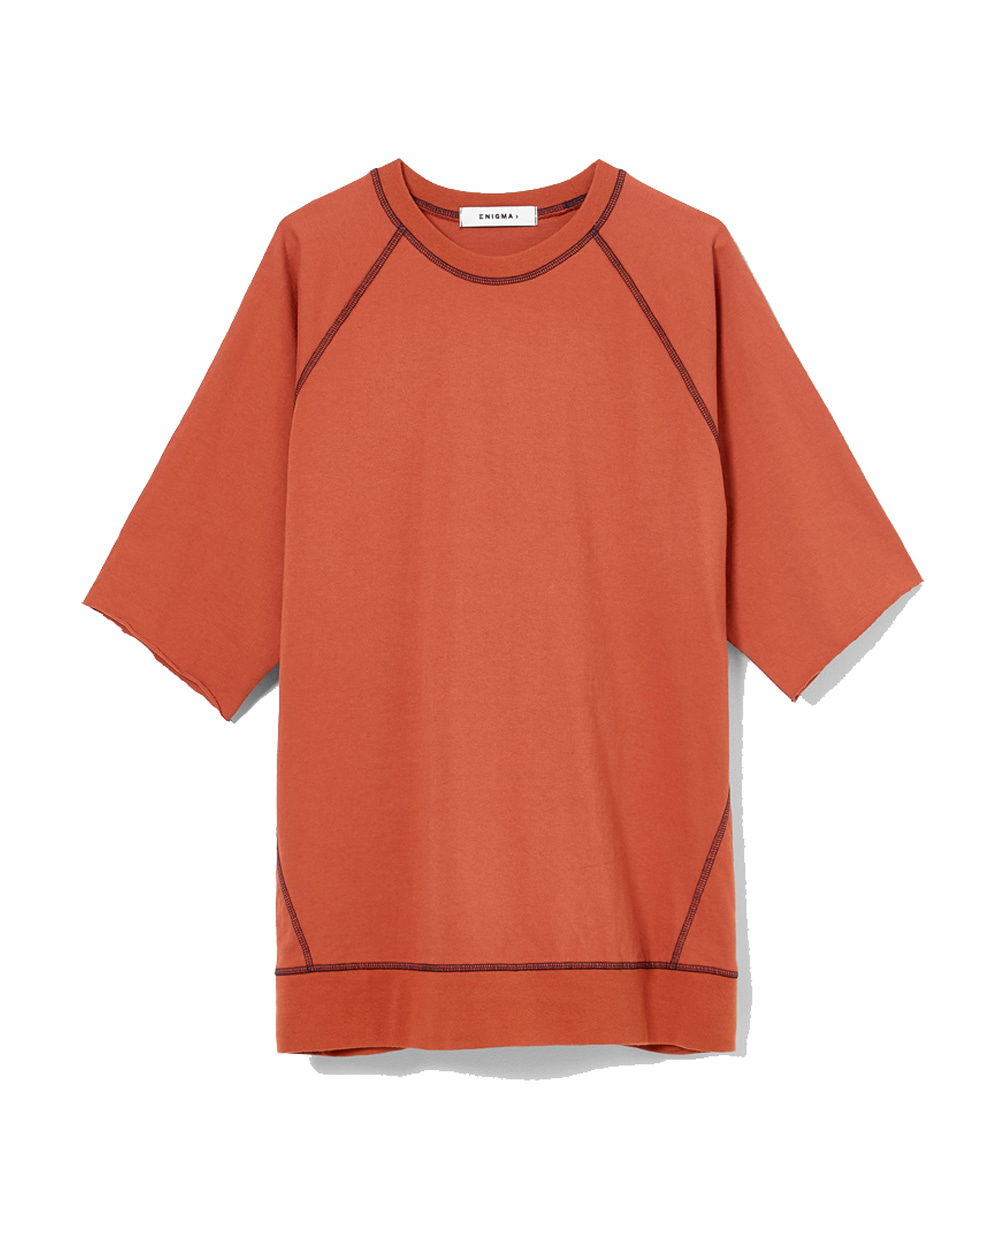 이니그마 Raglan Cut-off T-Shirt (Orange Red)